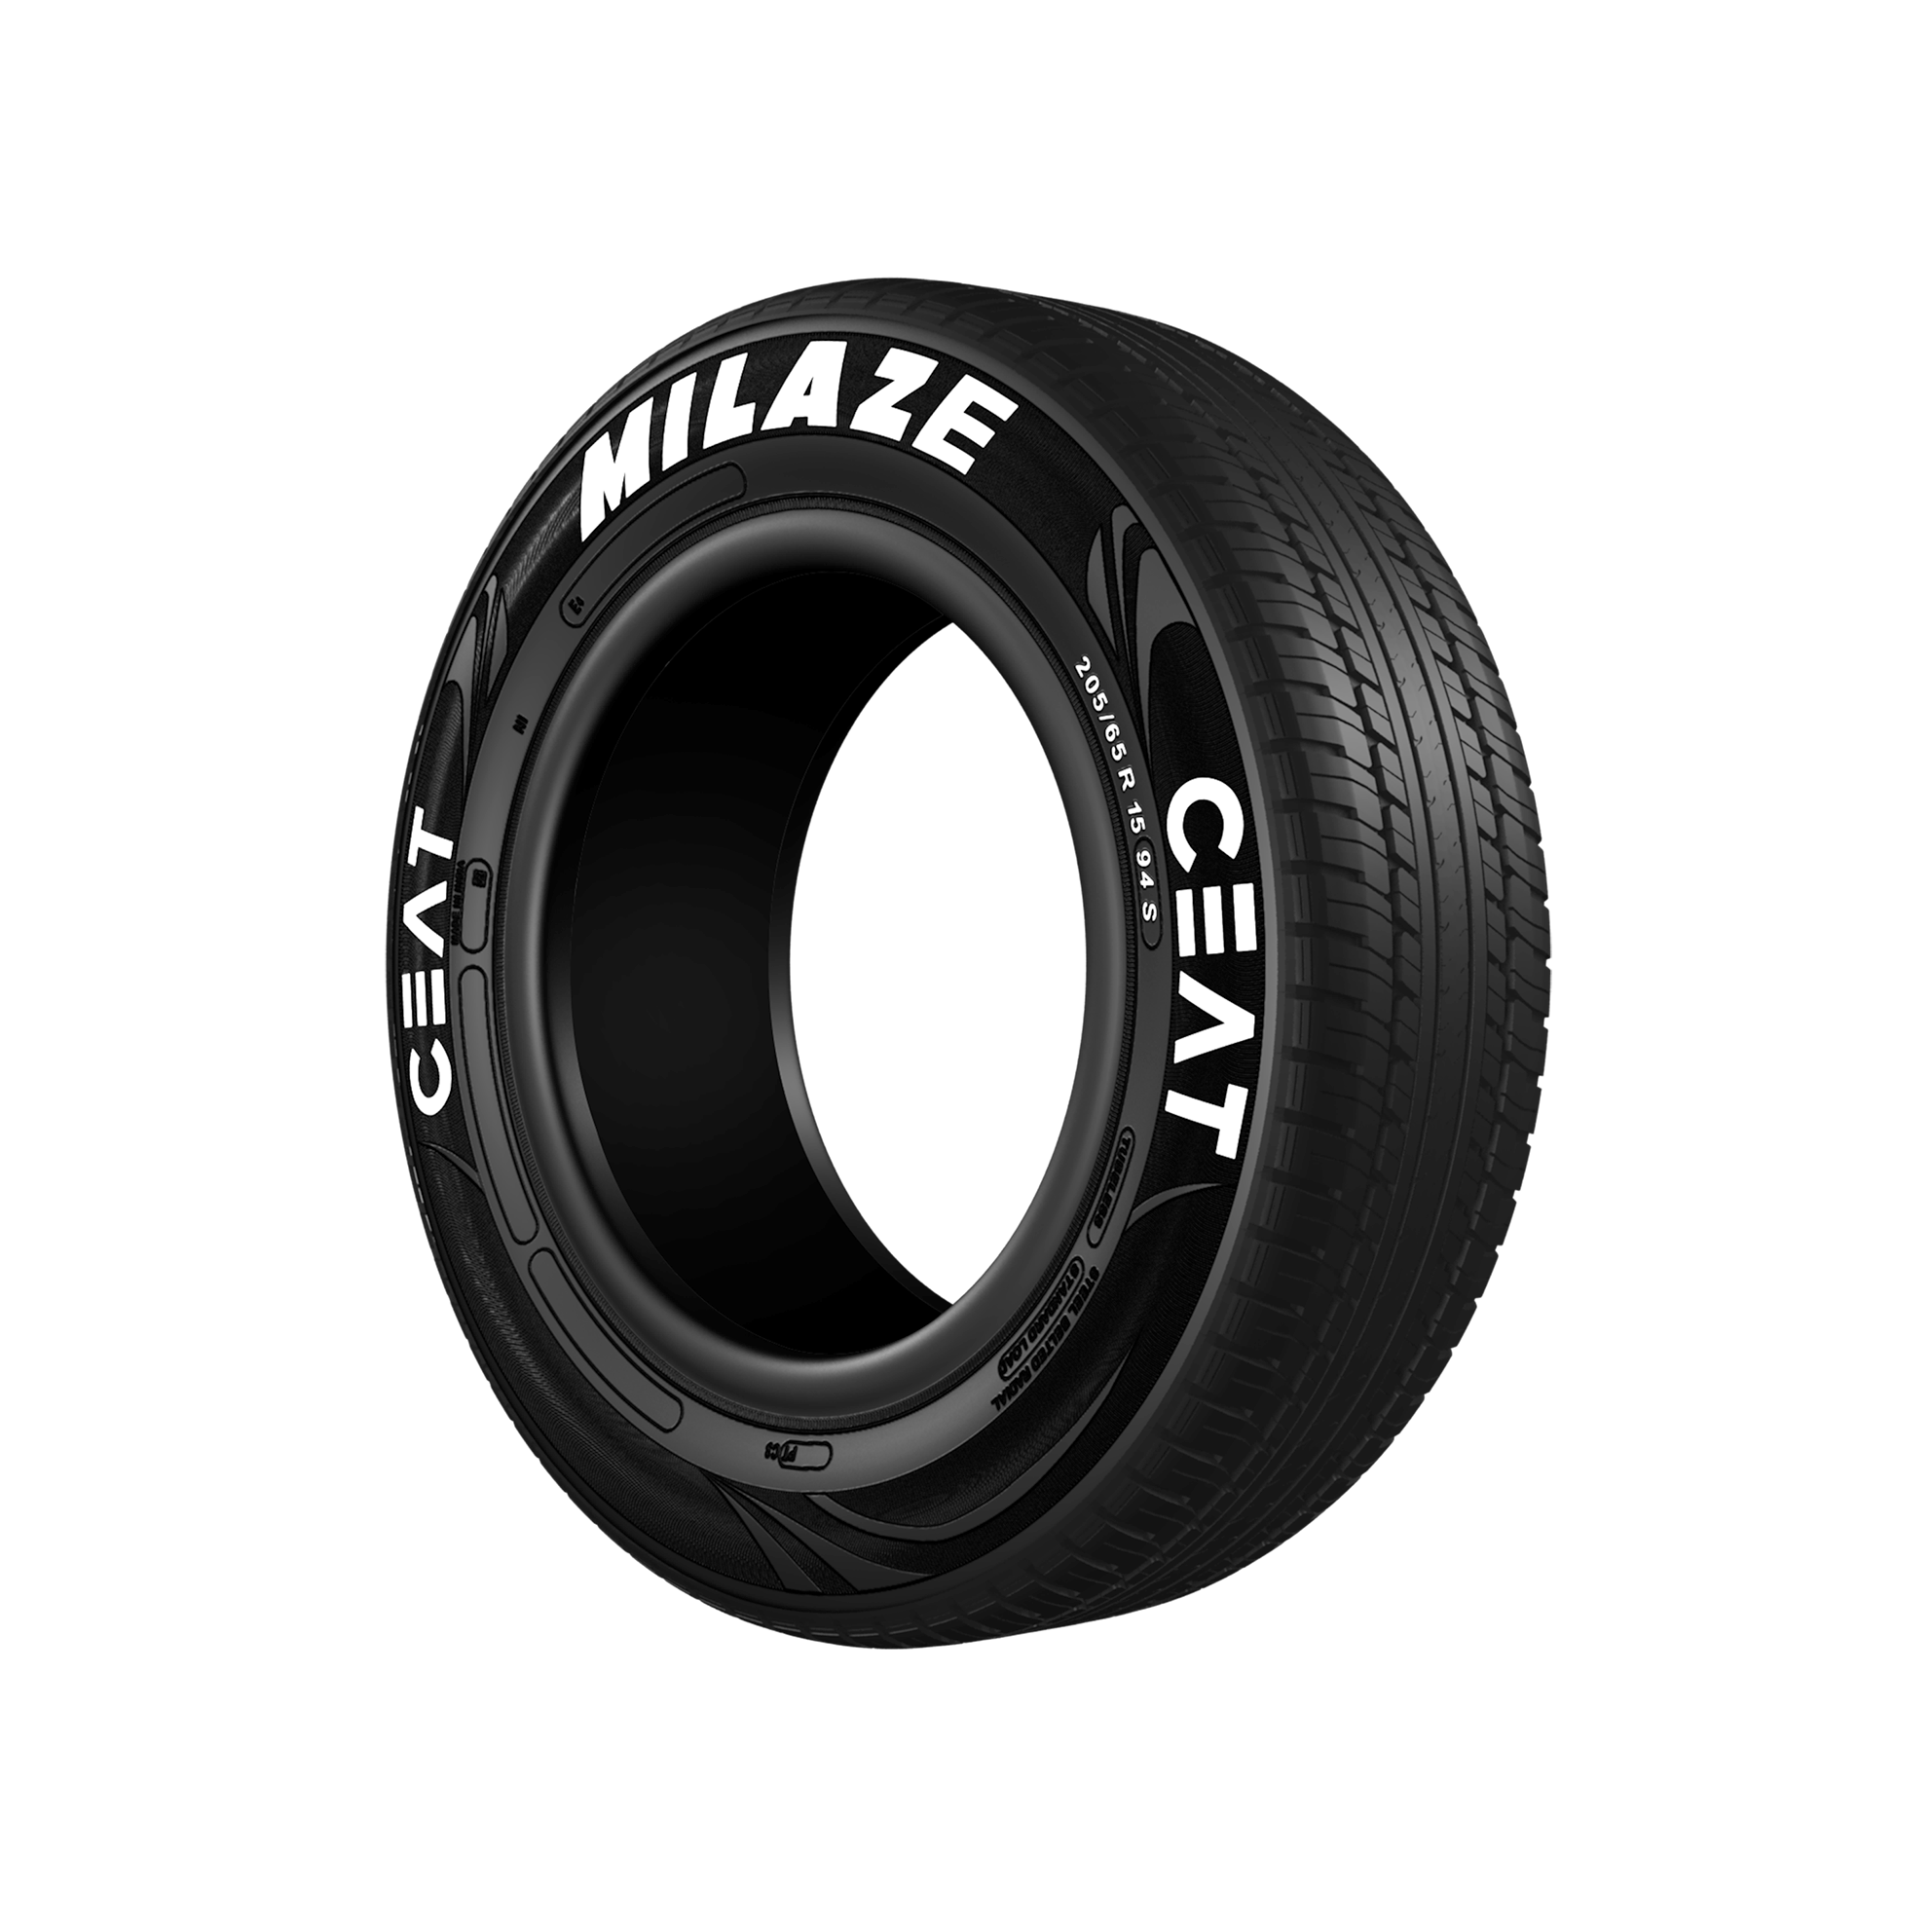 CEAT MILAZE 165/65 R 13 Requires Tube 77 T Car Tyre